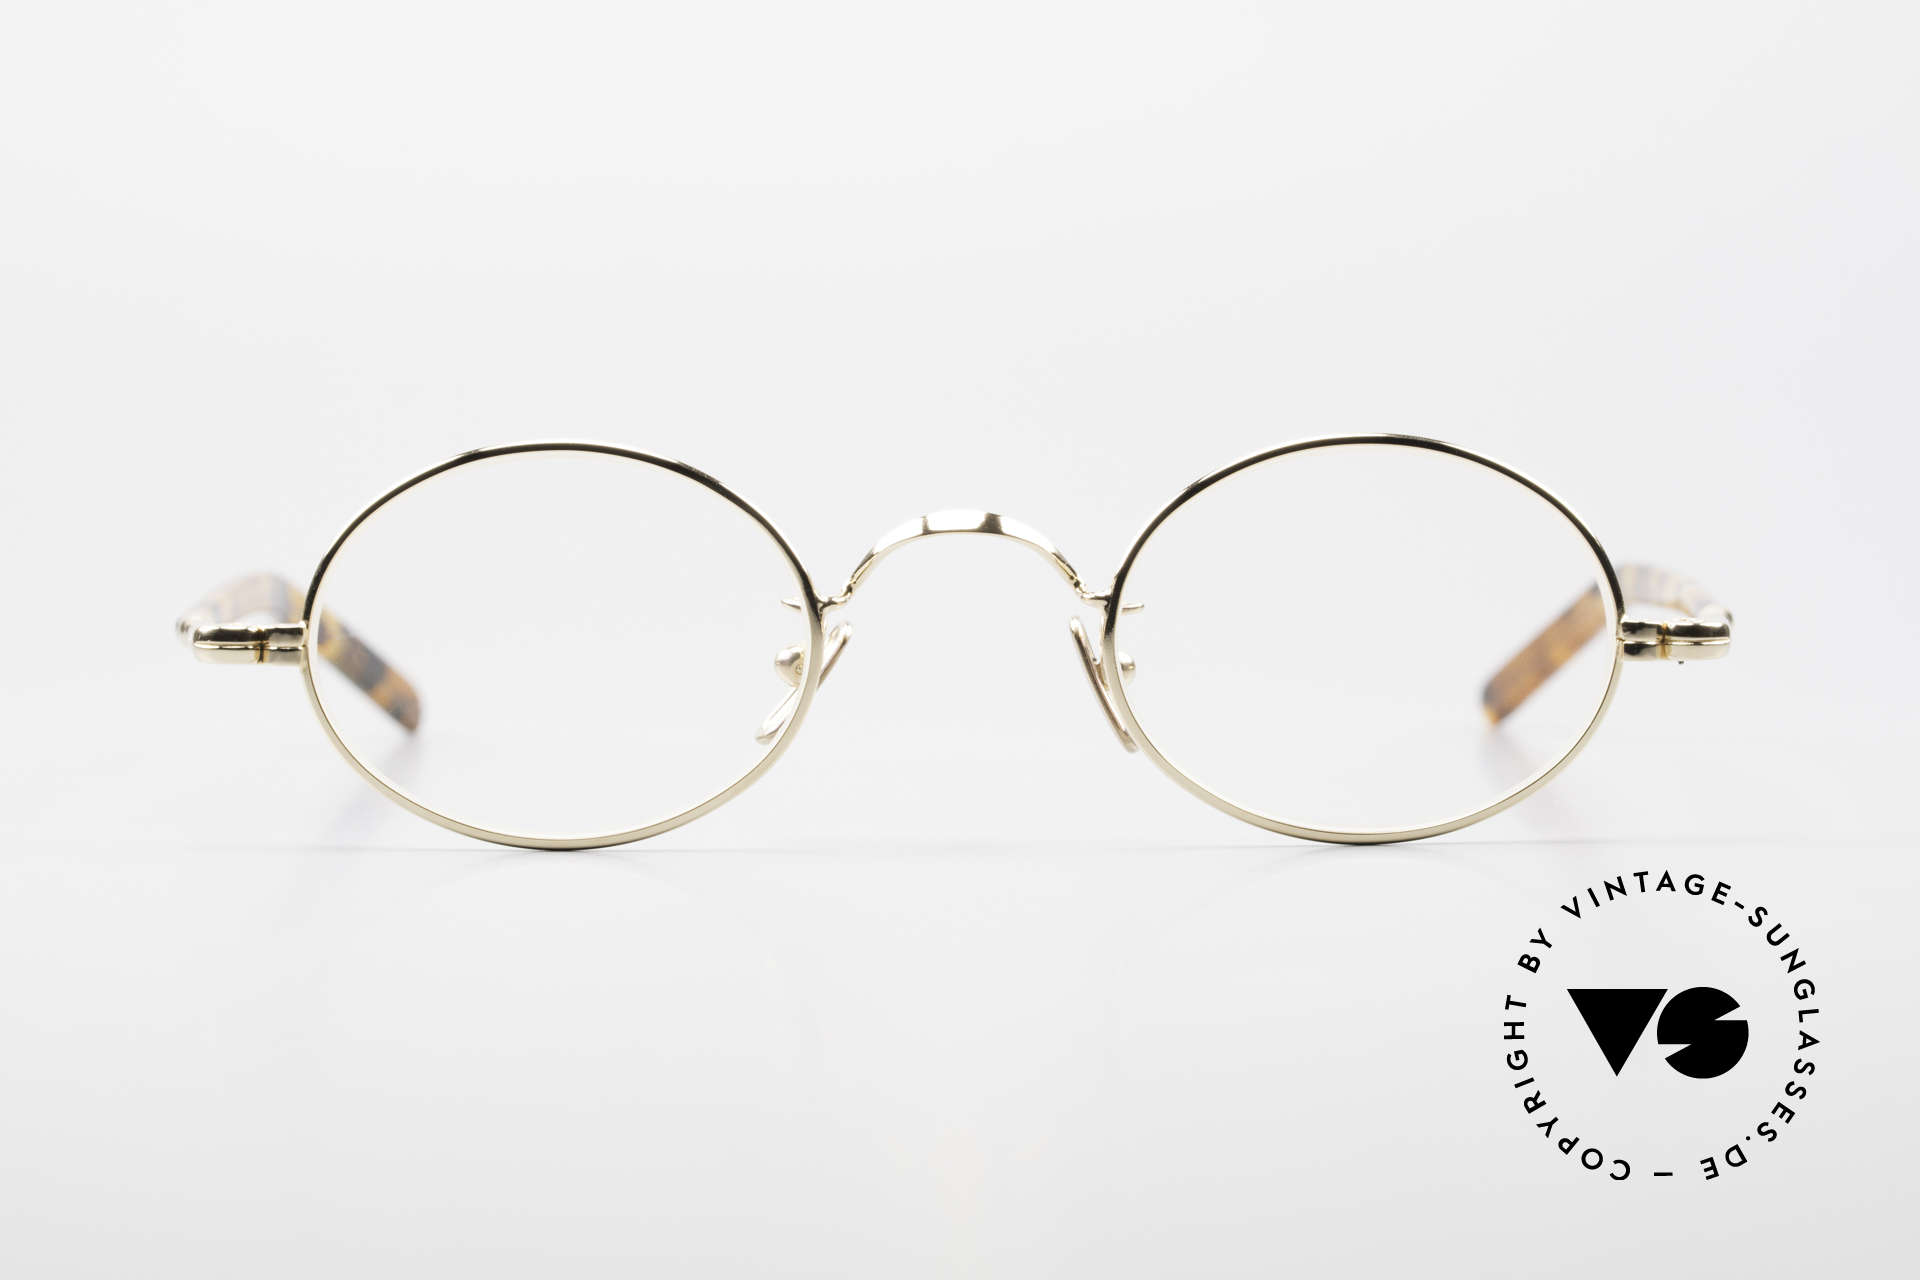 Lunor VA 100 Oval Lunor Glasses Gold Plated, gold-plated stainless steel frame with acetate temples, Made for Men and Women